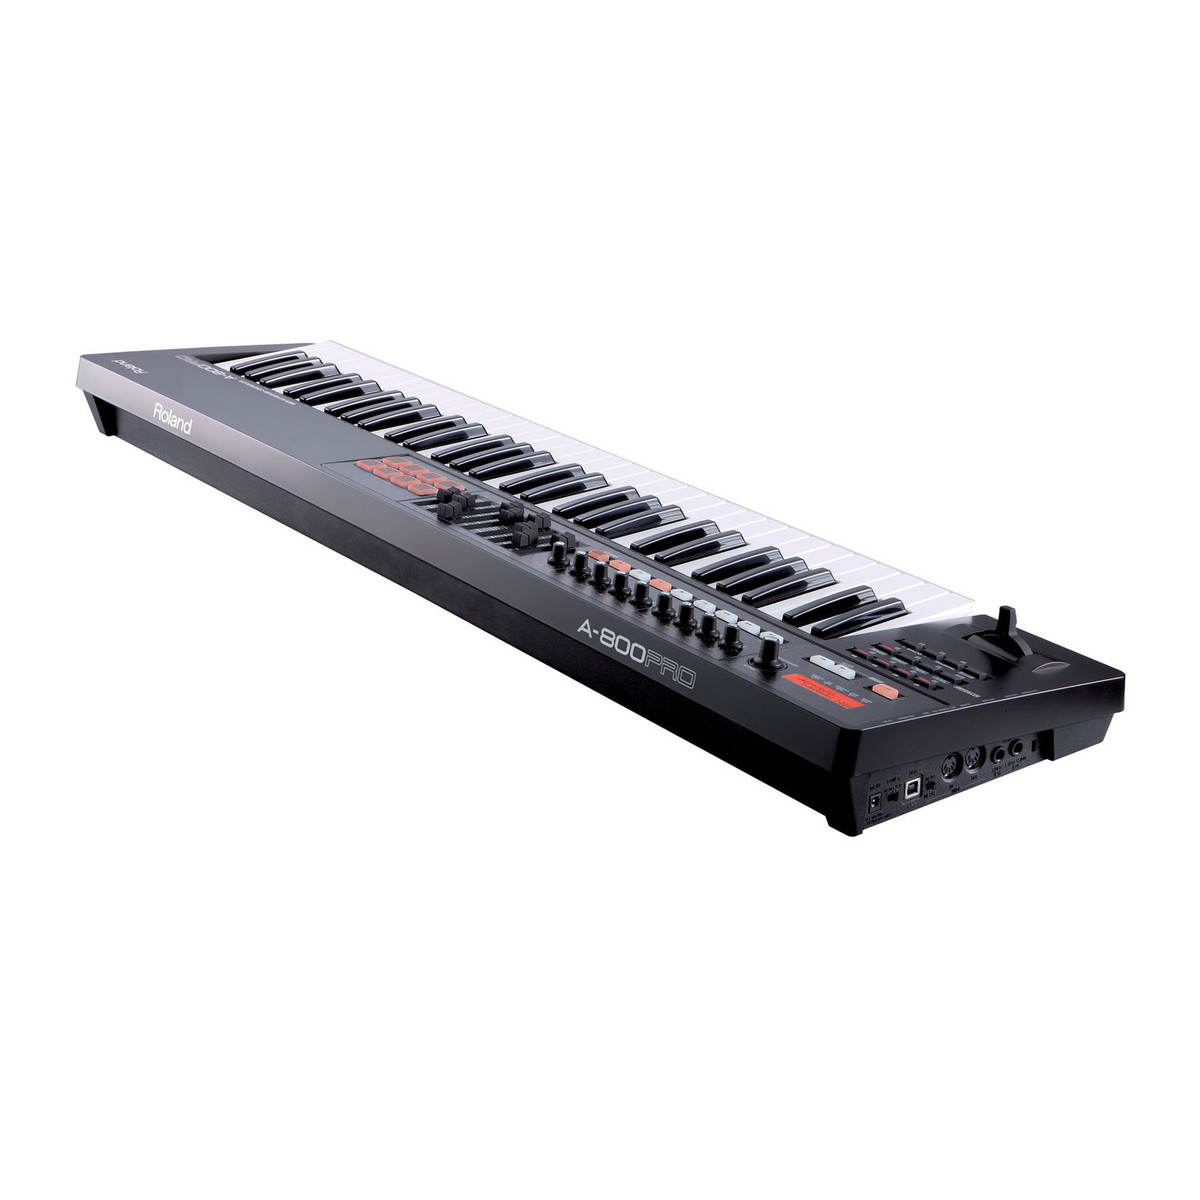 roland a 800 pro usb midi controller keyboard b stock at gear4music. Black Bedroom Furniture Sets. Home Design Ideas